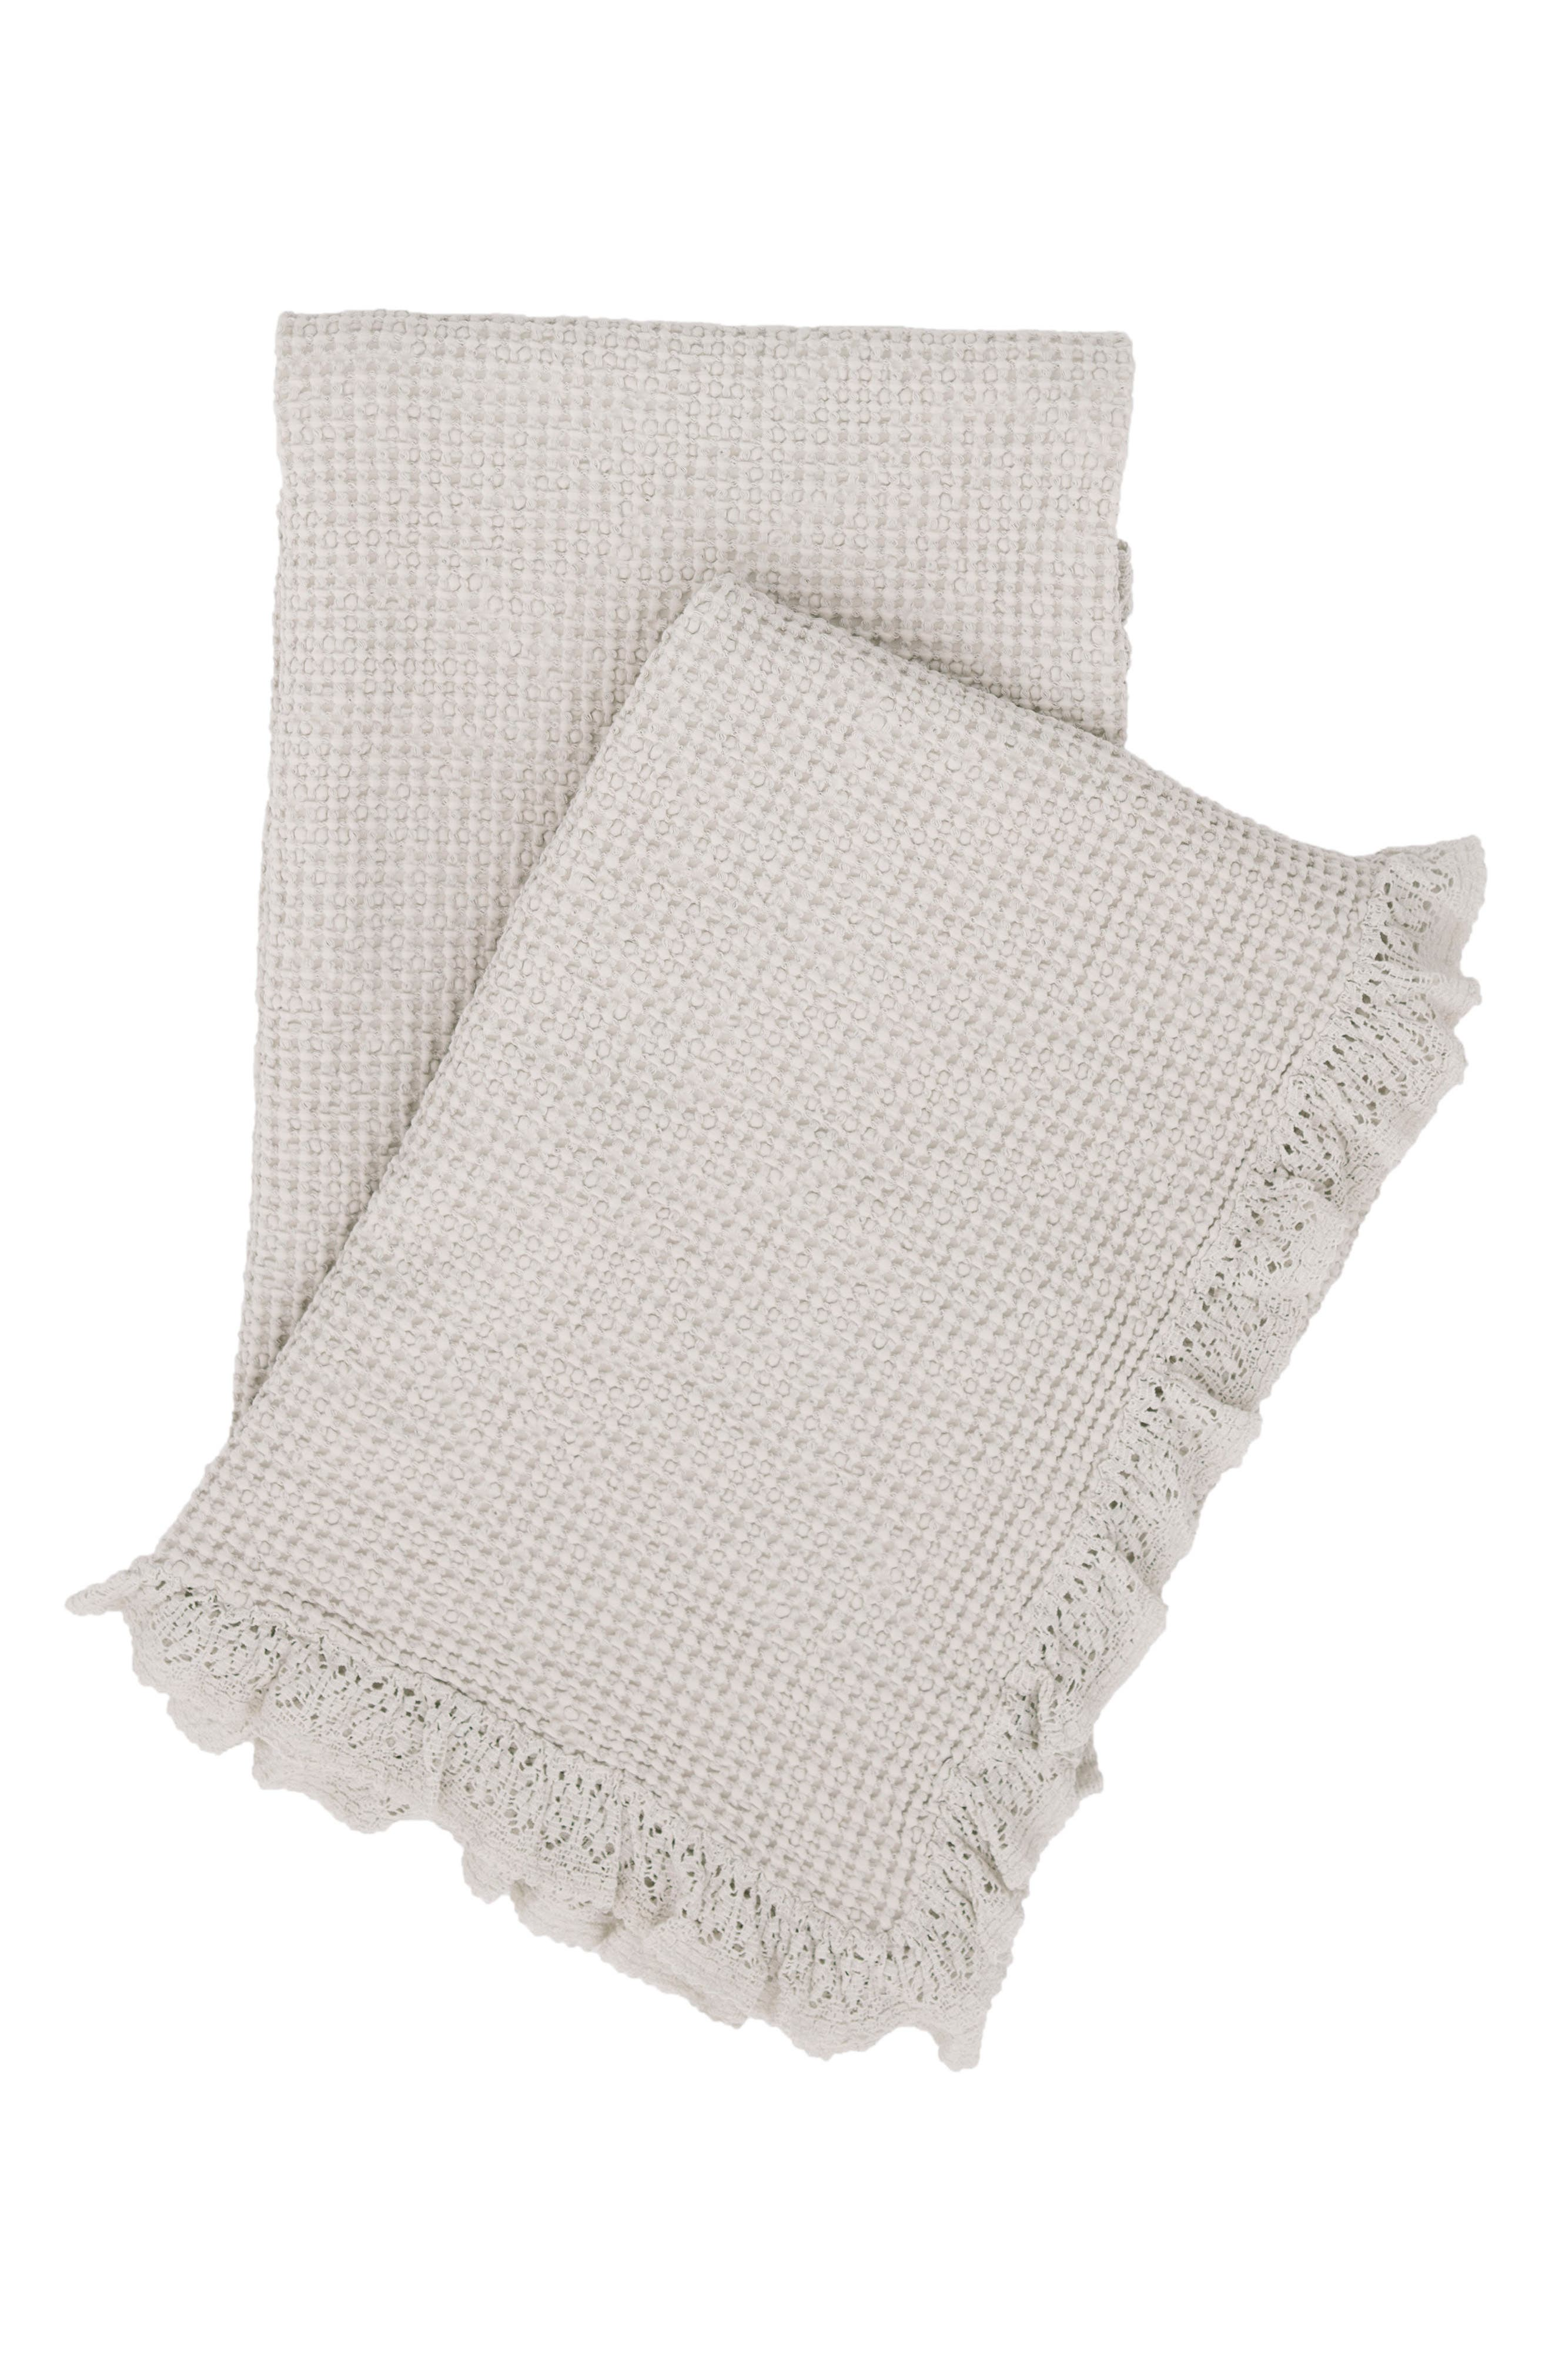 Lace Ruffle Throw,                         Main,                         color, 060